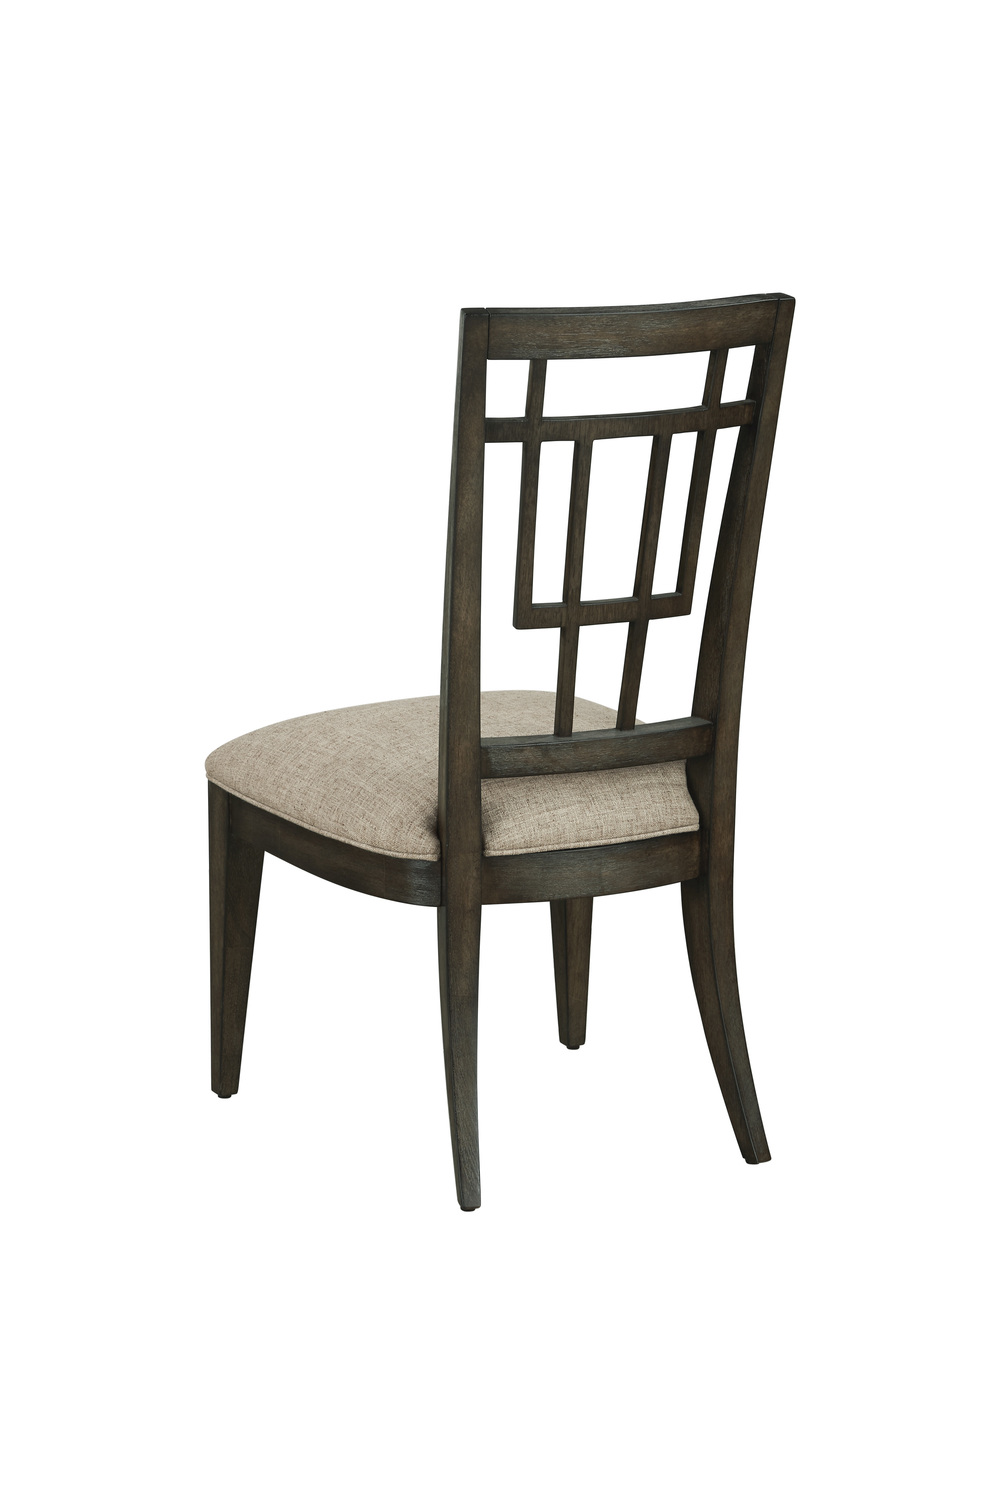 A.R.T. Furniture - Rohe Side Chair